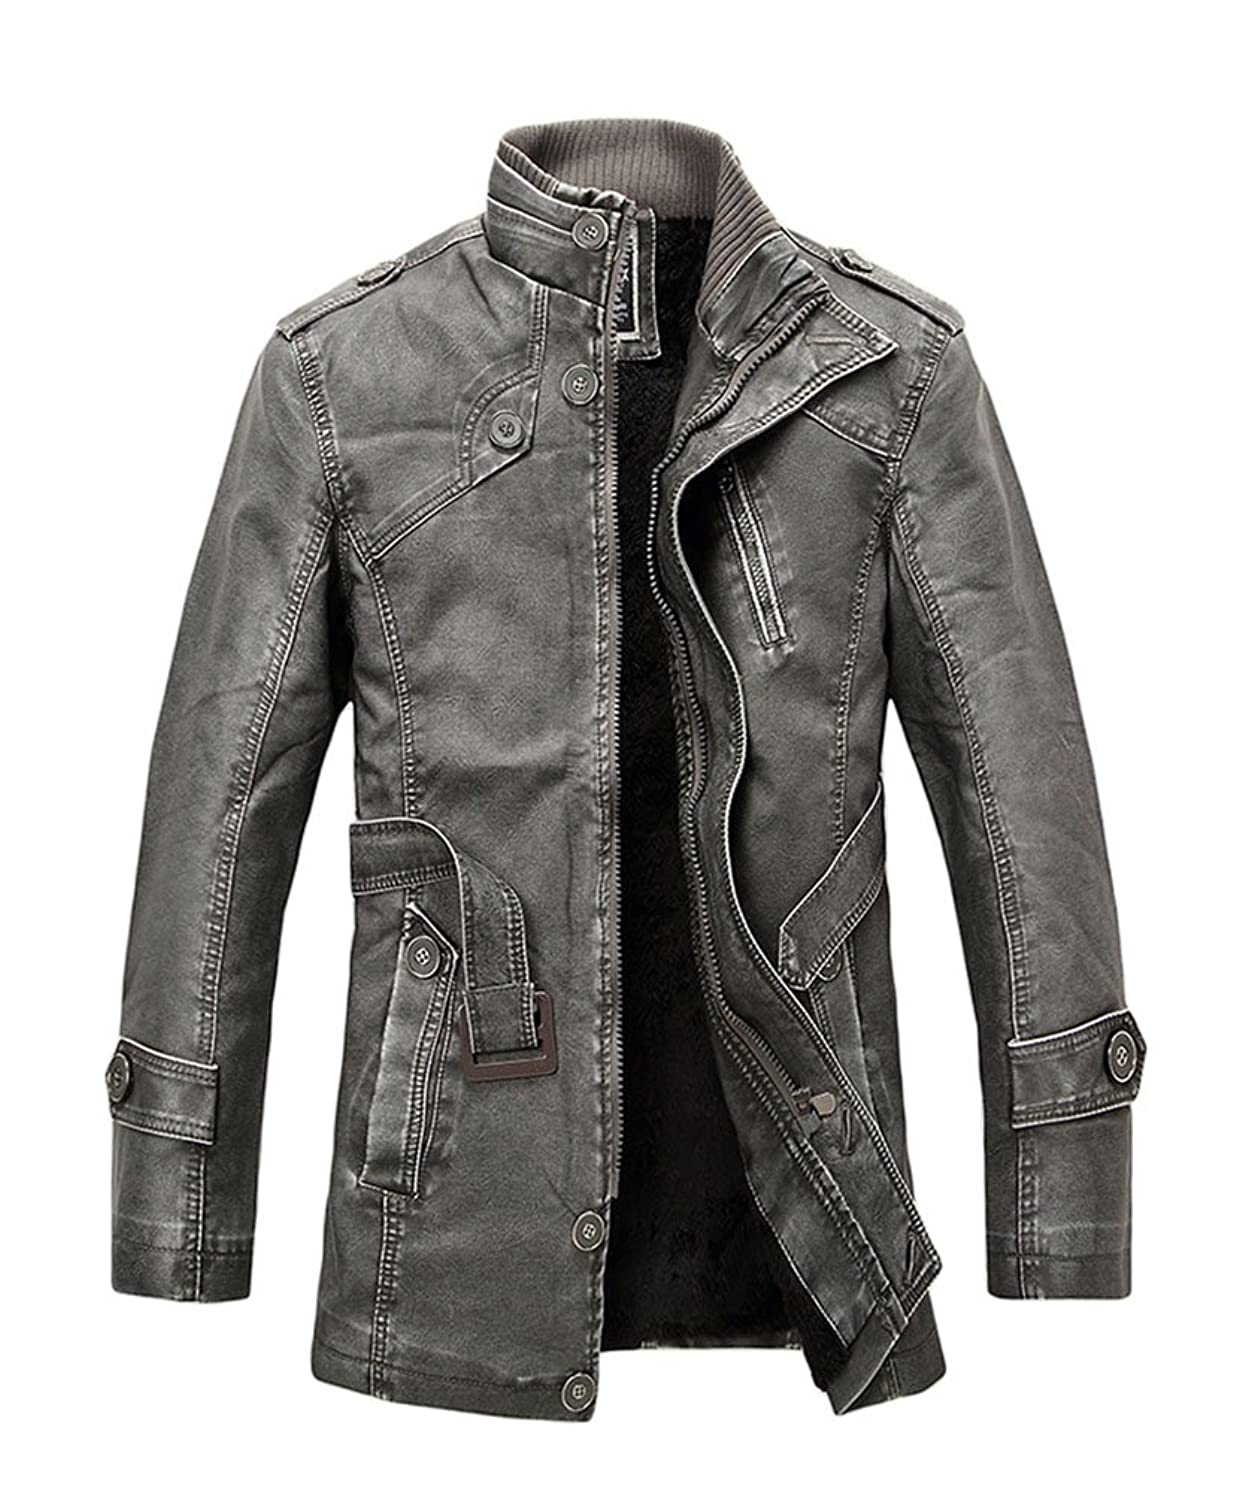 Baymate Men's Comfy Zipper Faux Leather Jacket Casual Stand Collar Outerwear Without Hood